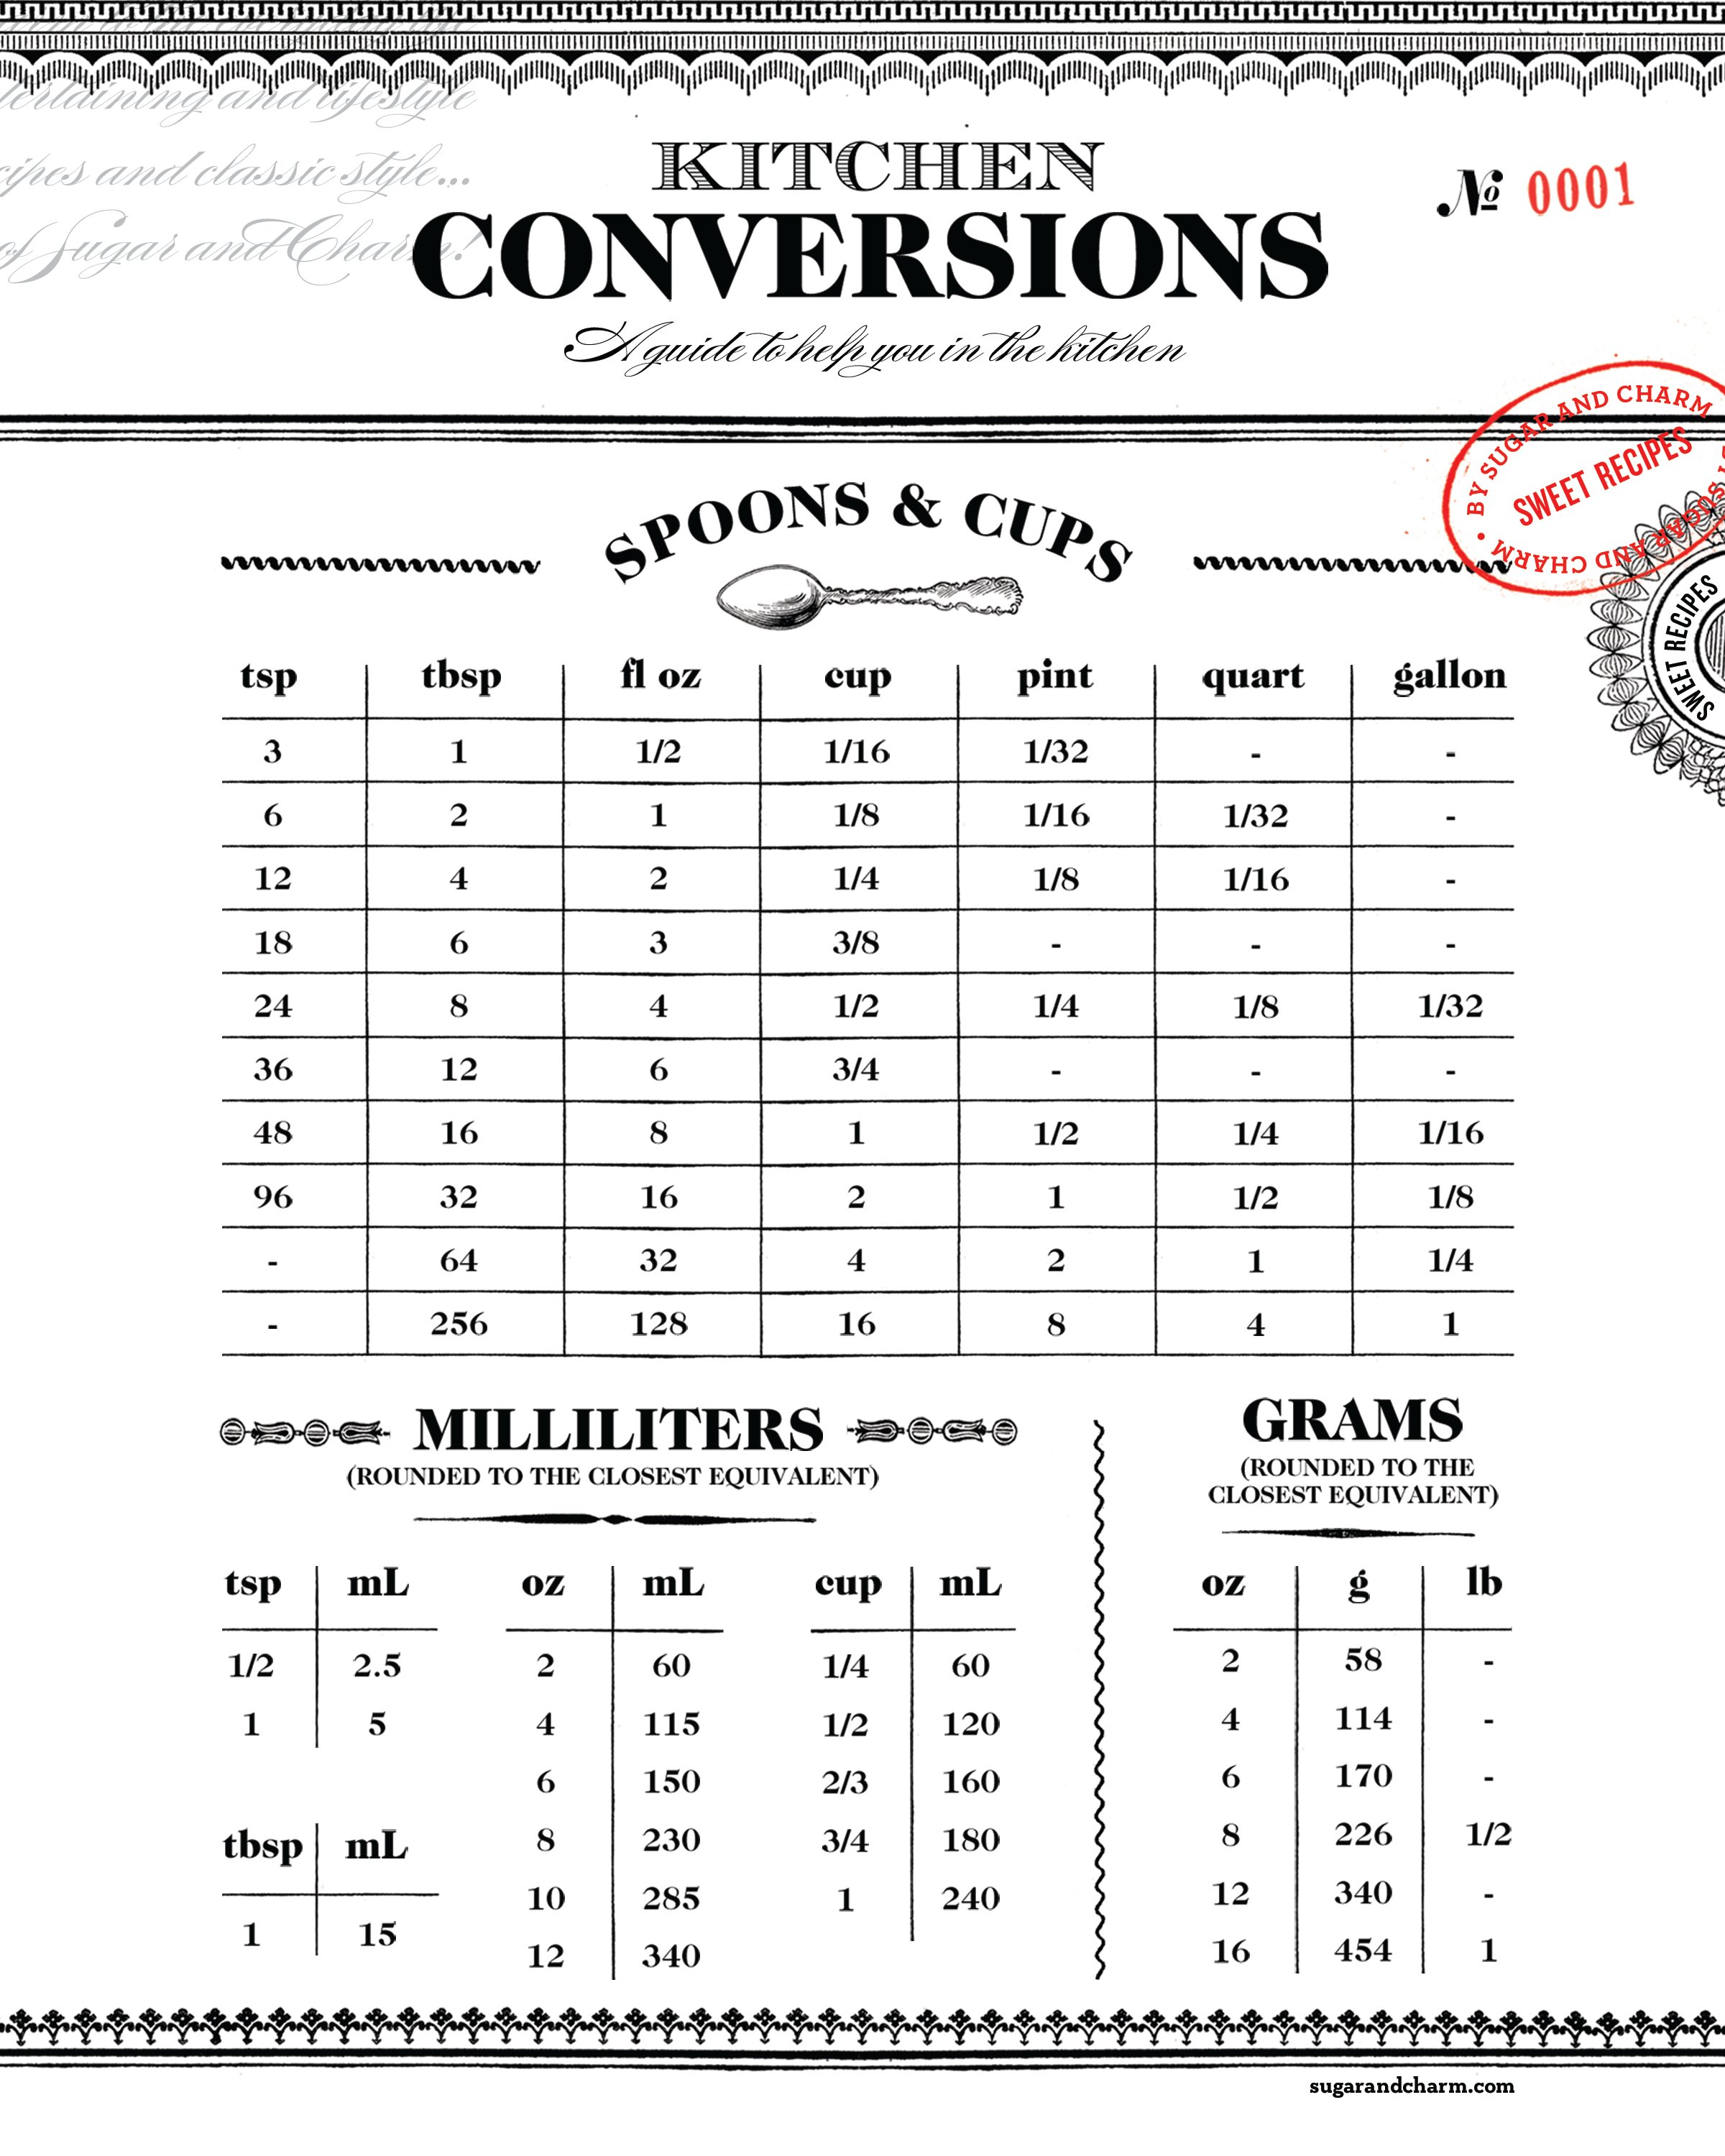 Printable kitchen conversion chart sugar and charm sugar and charming printable kitchen conversion chart forumfinder Choice Image